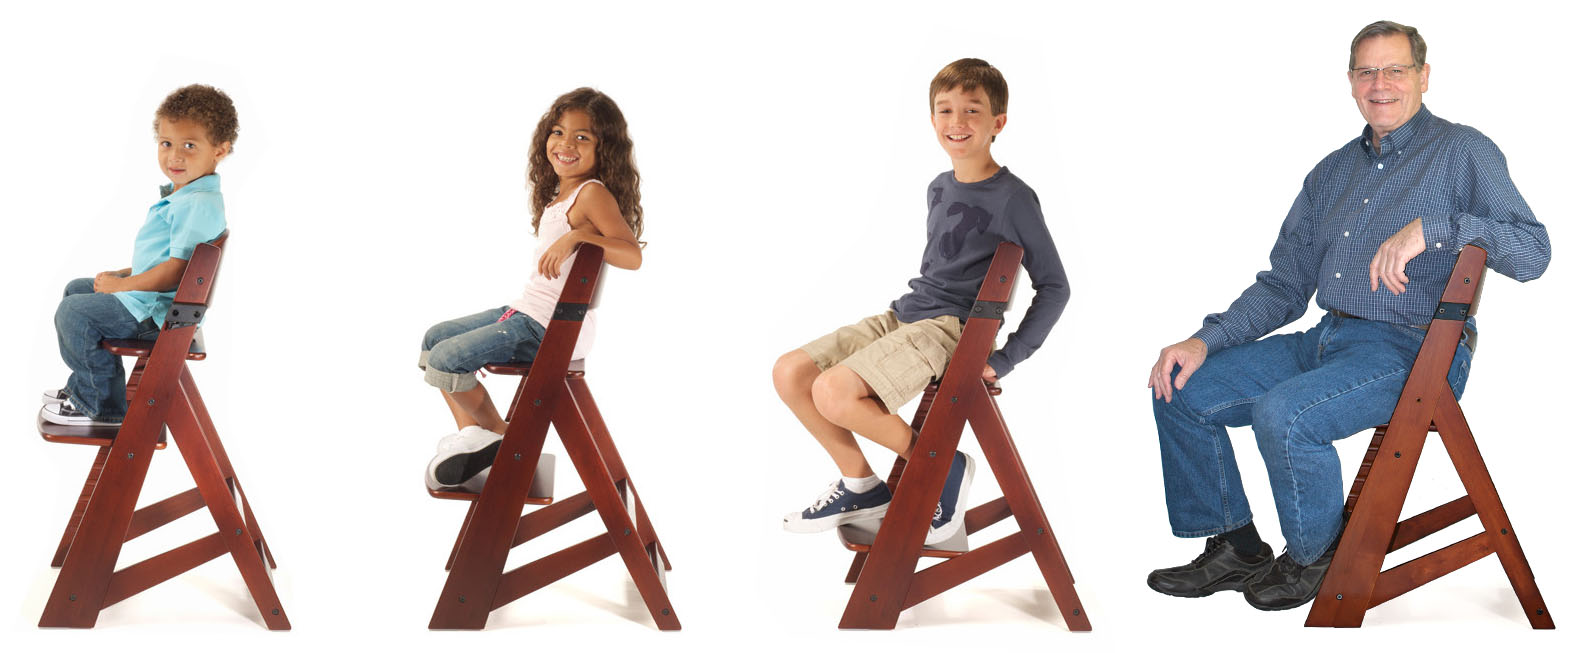 Keekaroo Kids Chair Growth